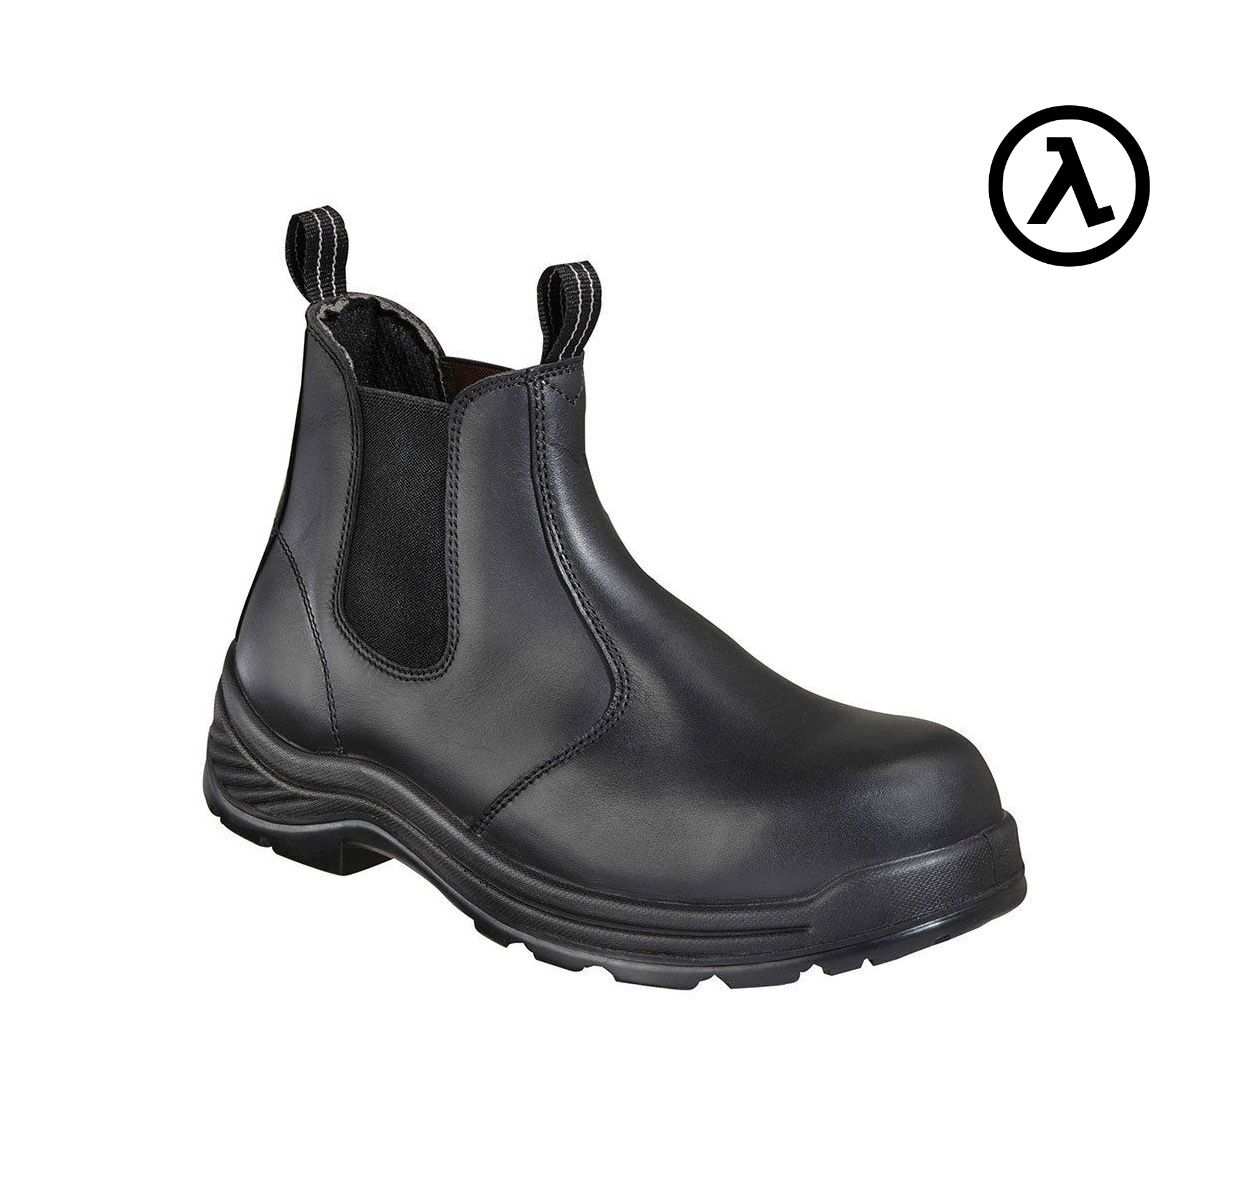 THOROGOOD UNIFORM QUICK RELEASE NON METALLIC STATION BOOTS 834-6034 - ALL SIZES